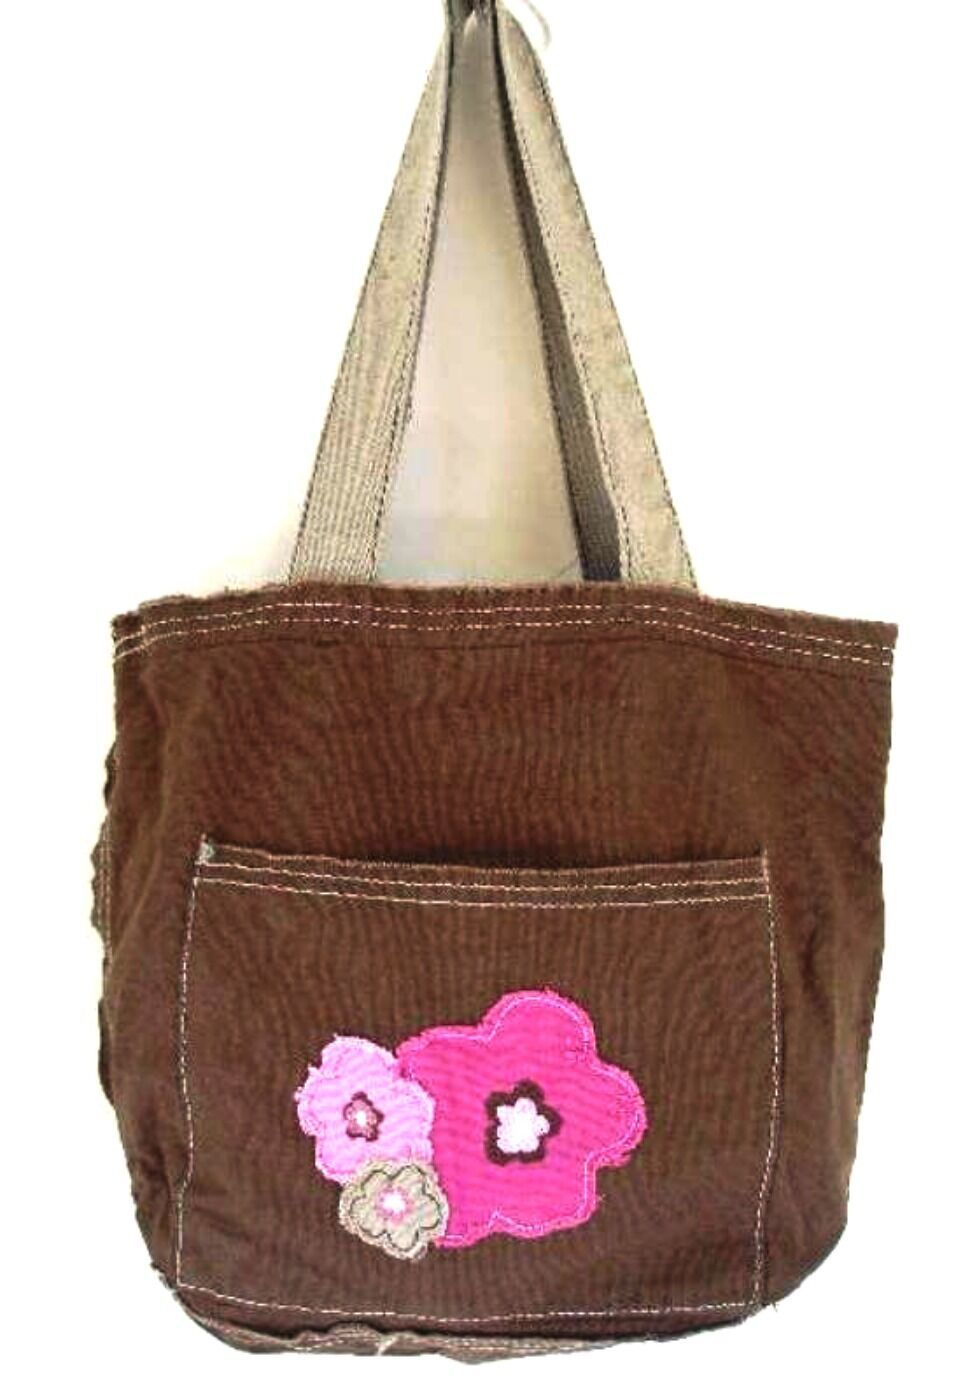 Primary image for Thirty-One Mini Retro Metro Bag Brown w/ Frayed Pink Flowers Retired 31 Gifts